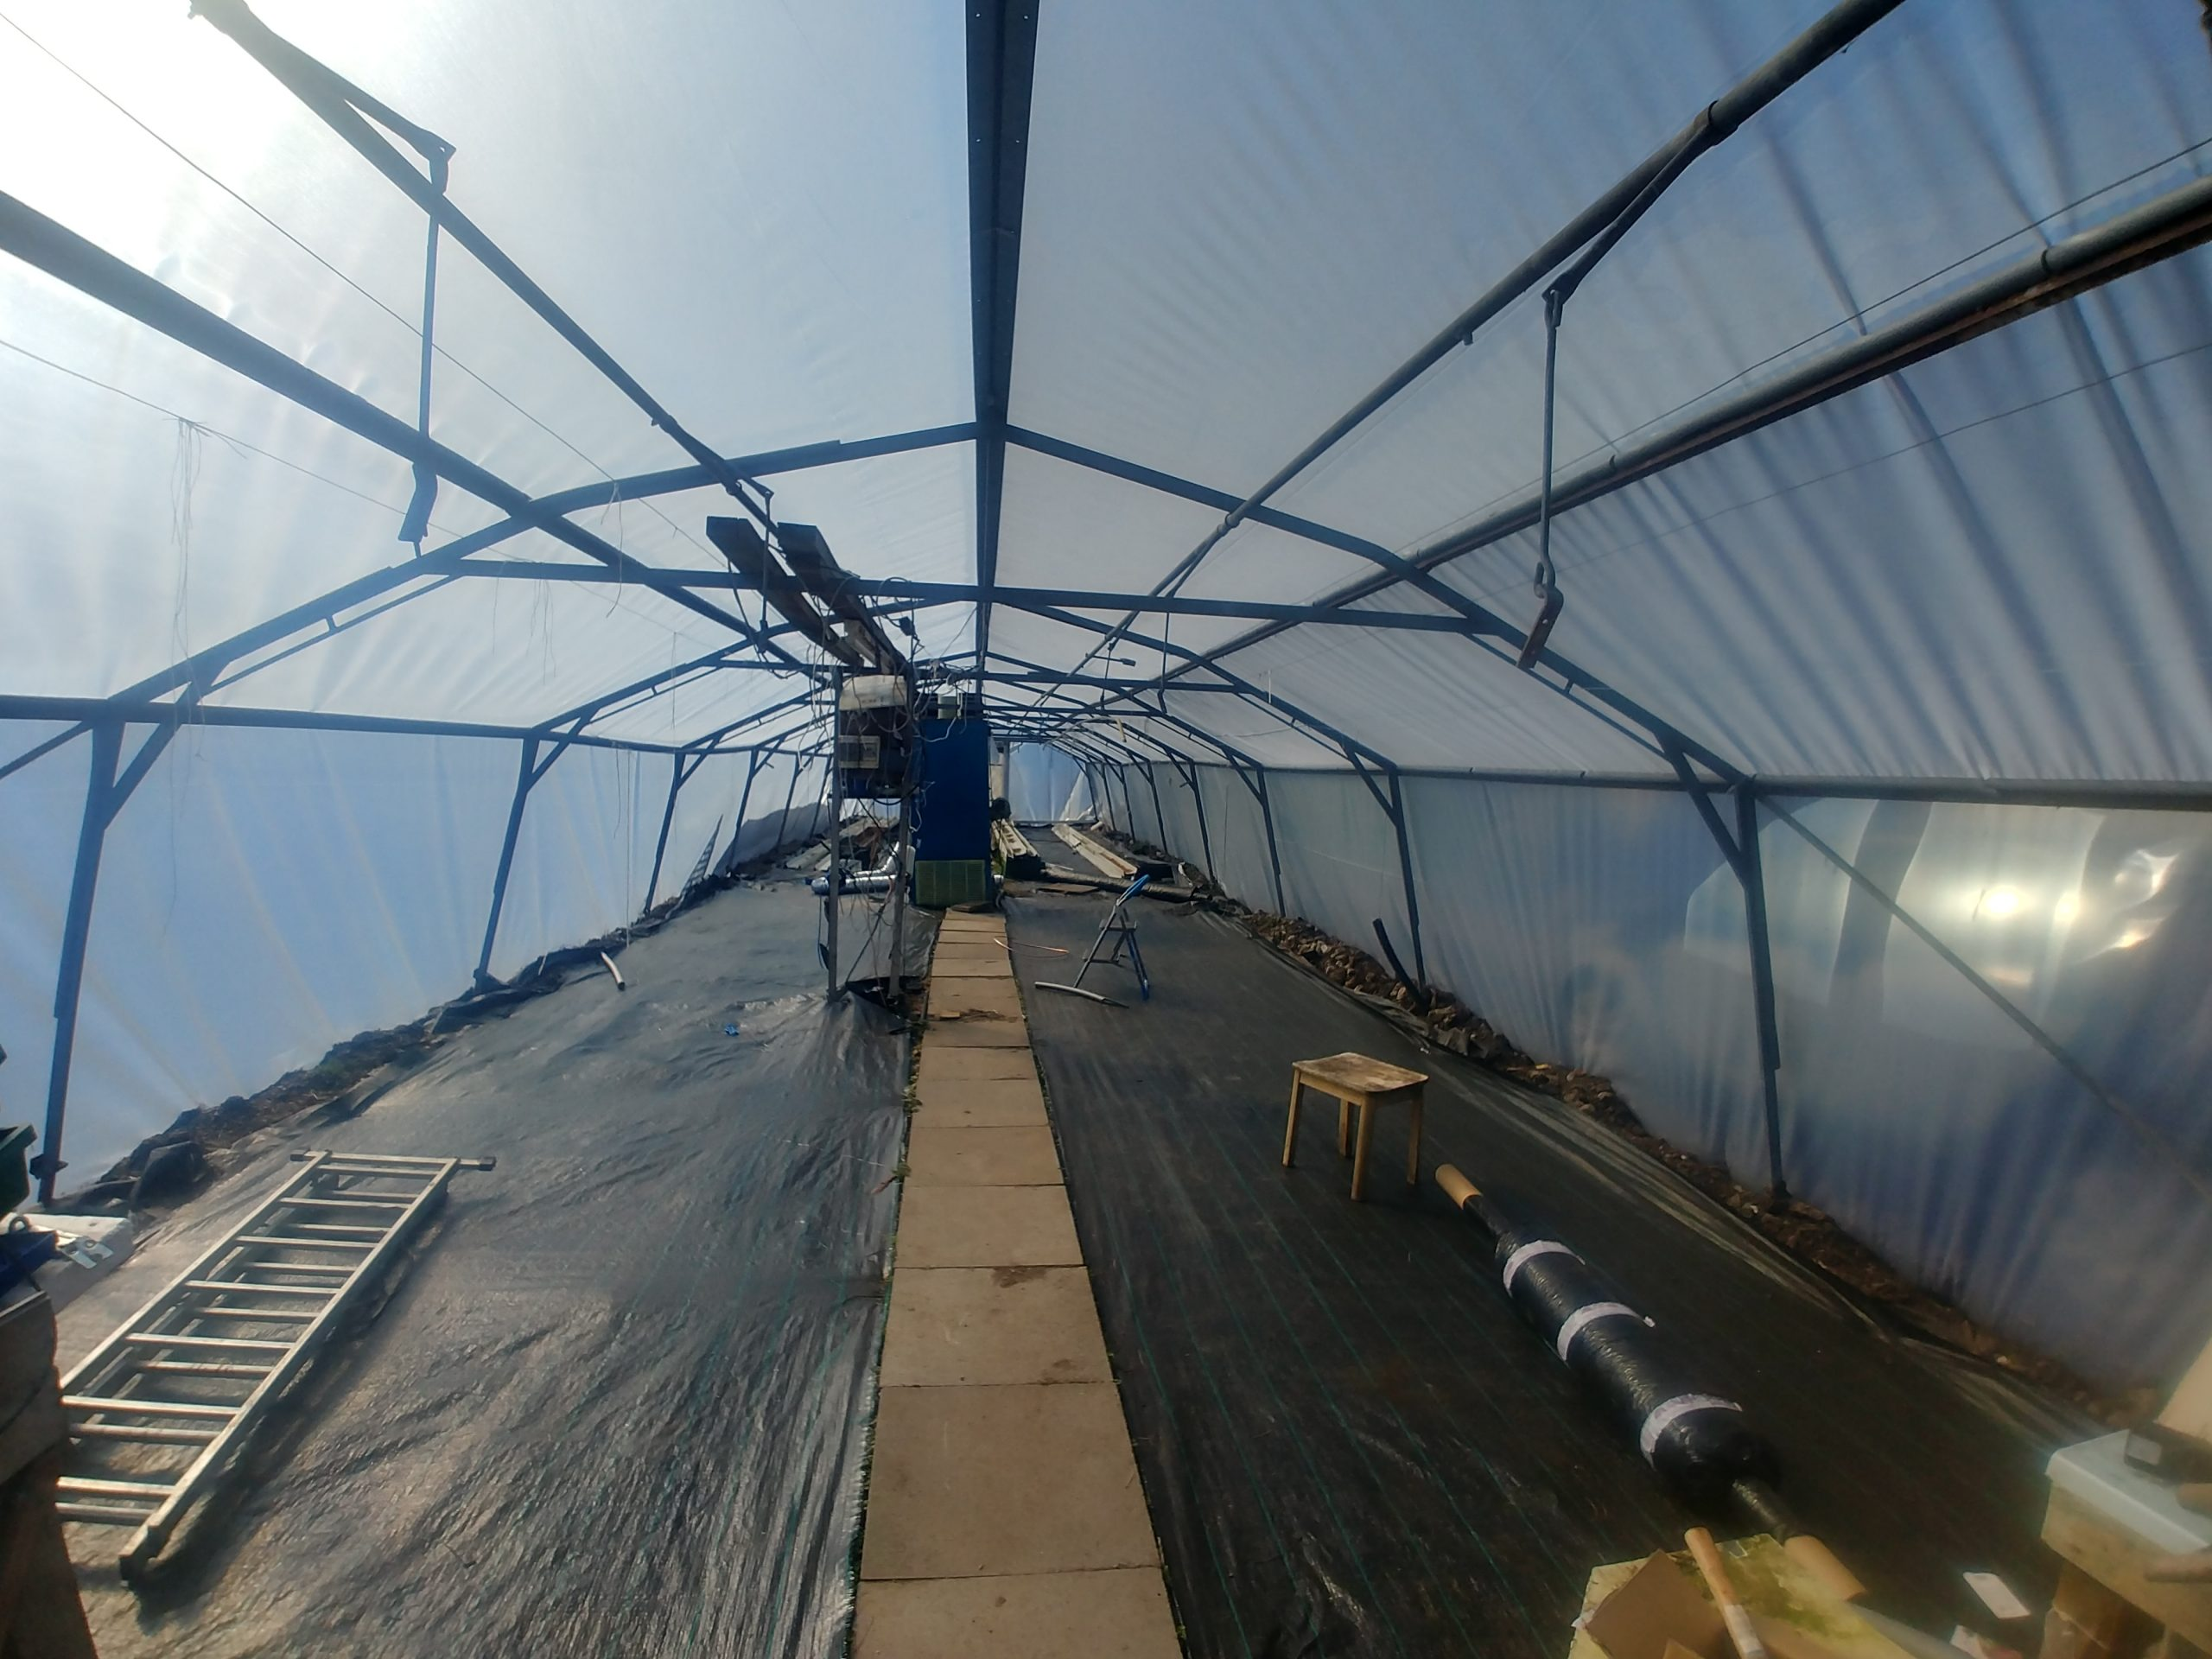 Heated Greenhouse has new lease on life